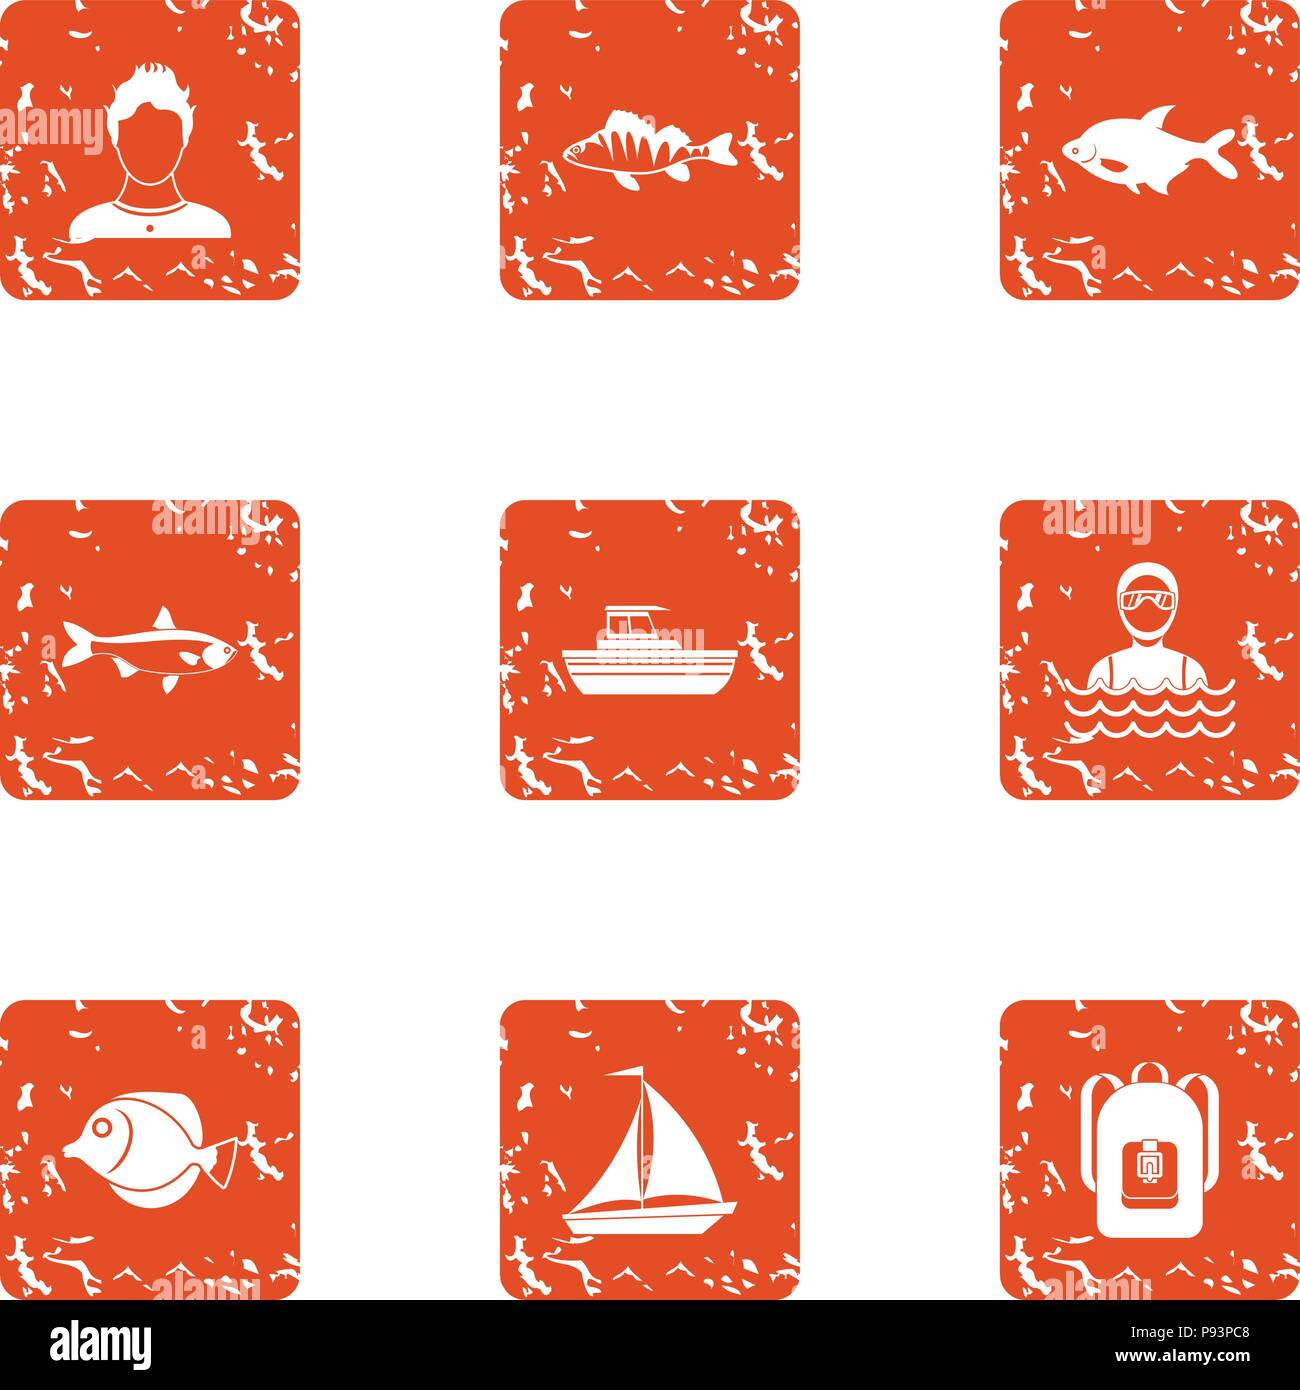 Fish spectacle icons set, grunge style - Stock Vector